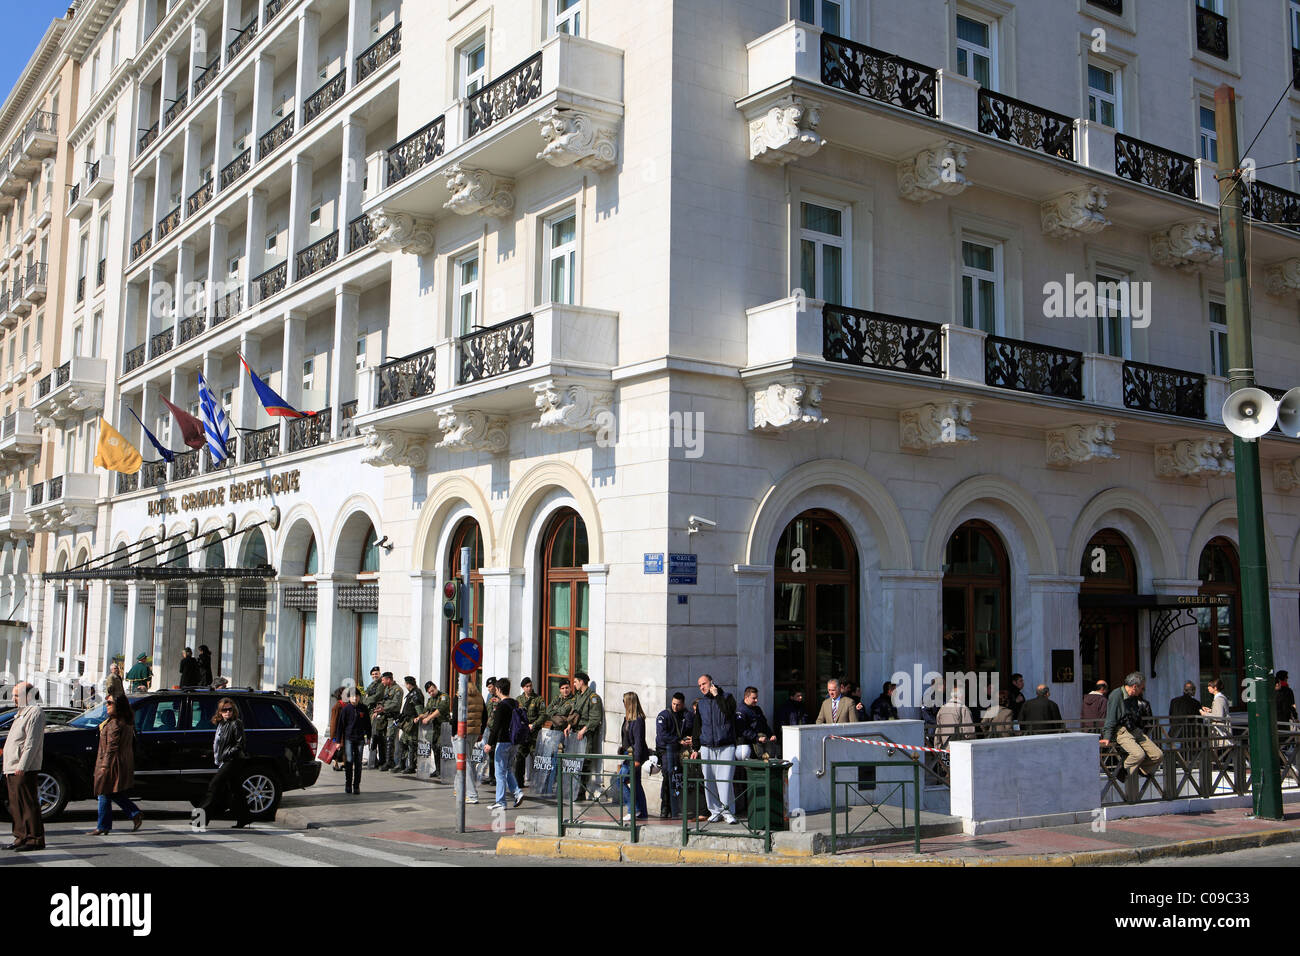 europe greece athens riot police resting outside the grande bretagne hotel - Stock Image